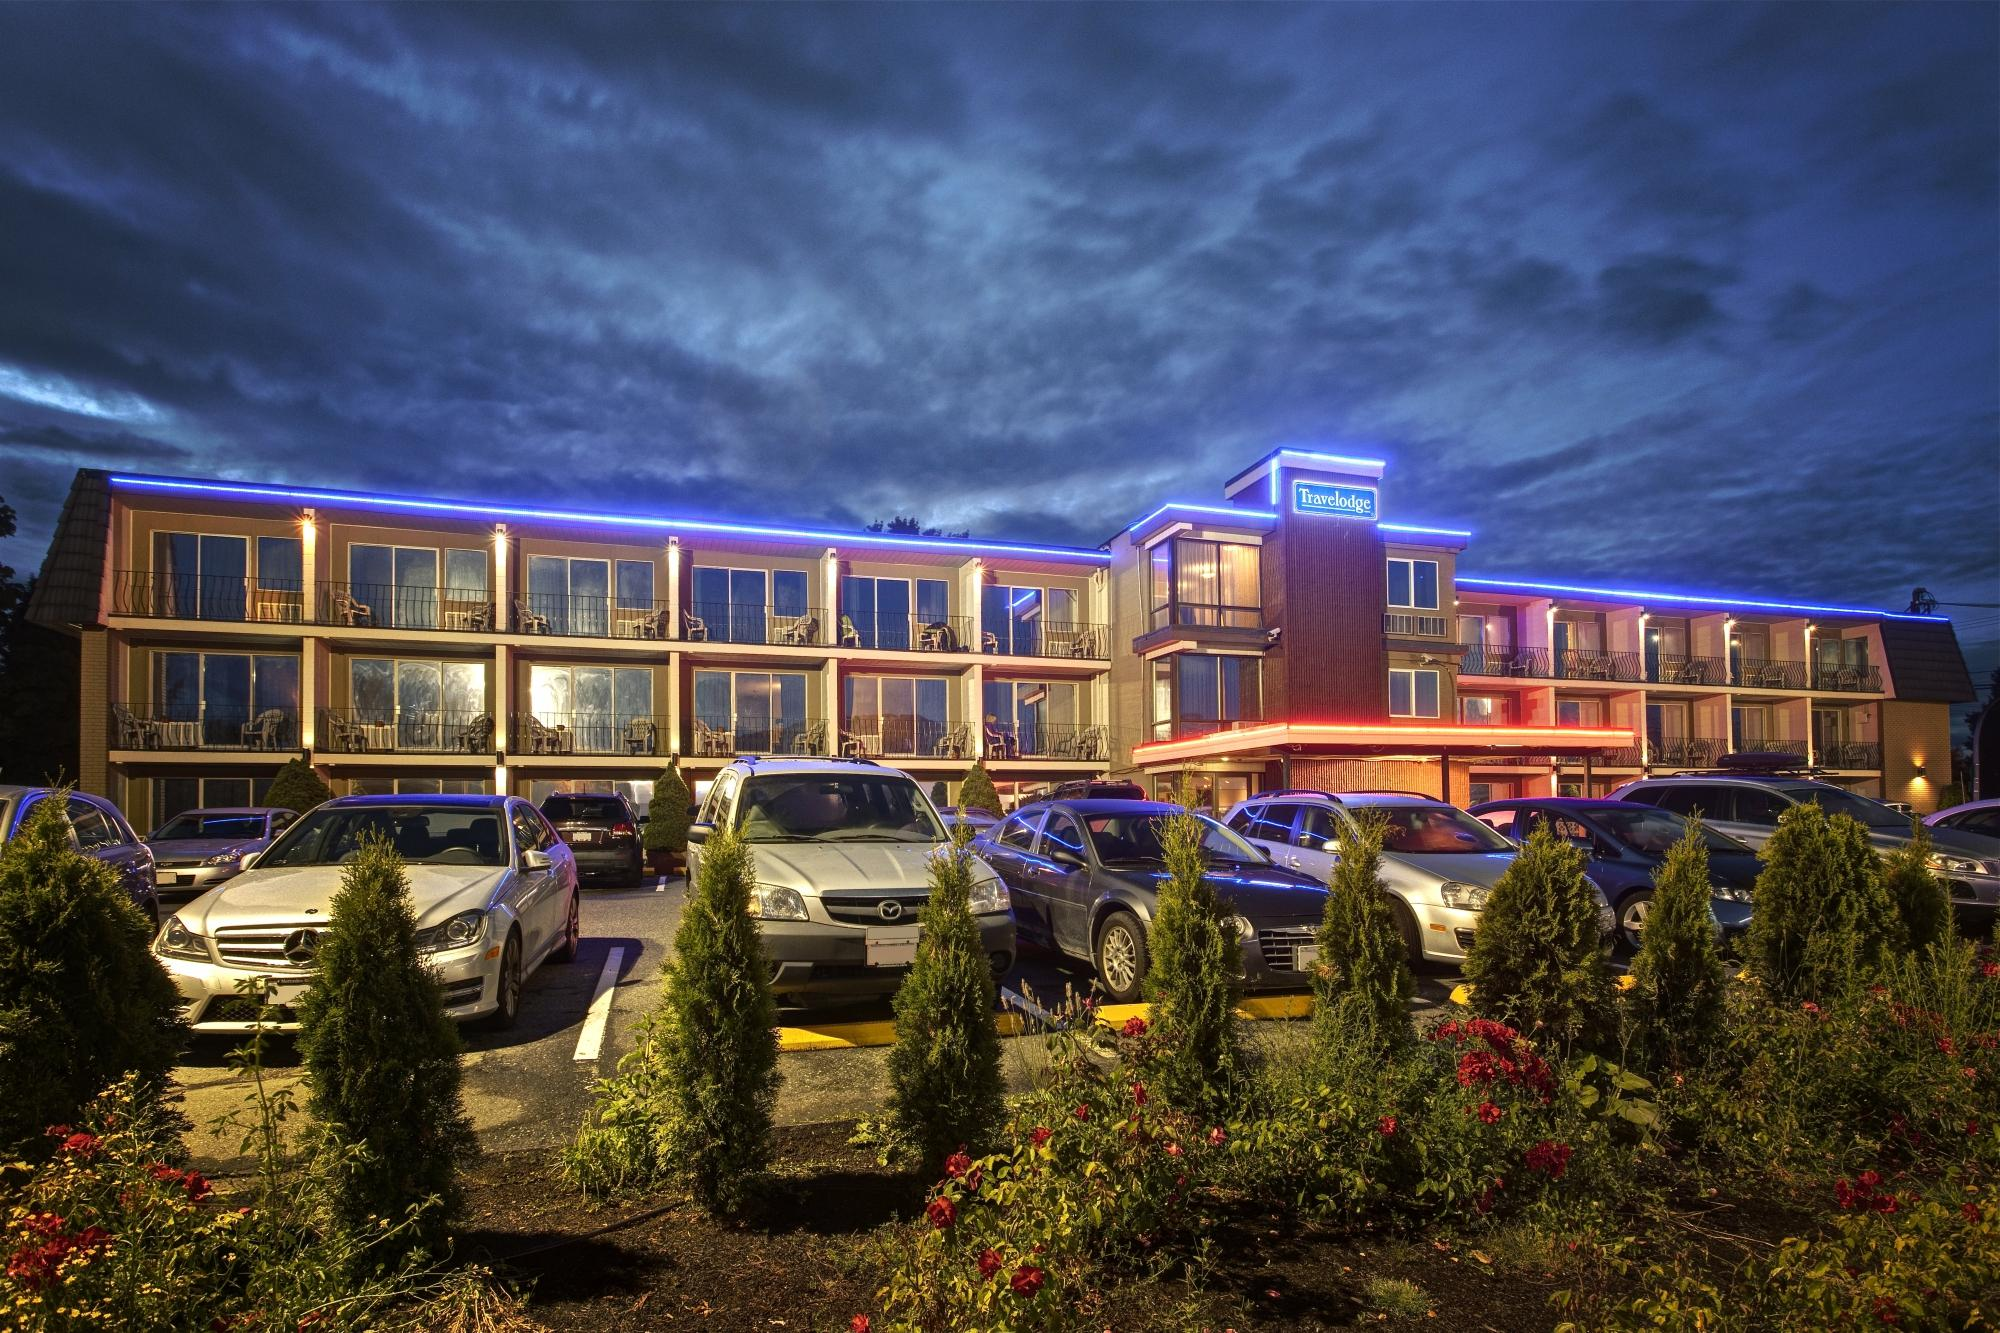 Travelodge Nanaimo